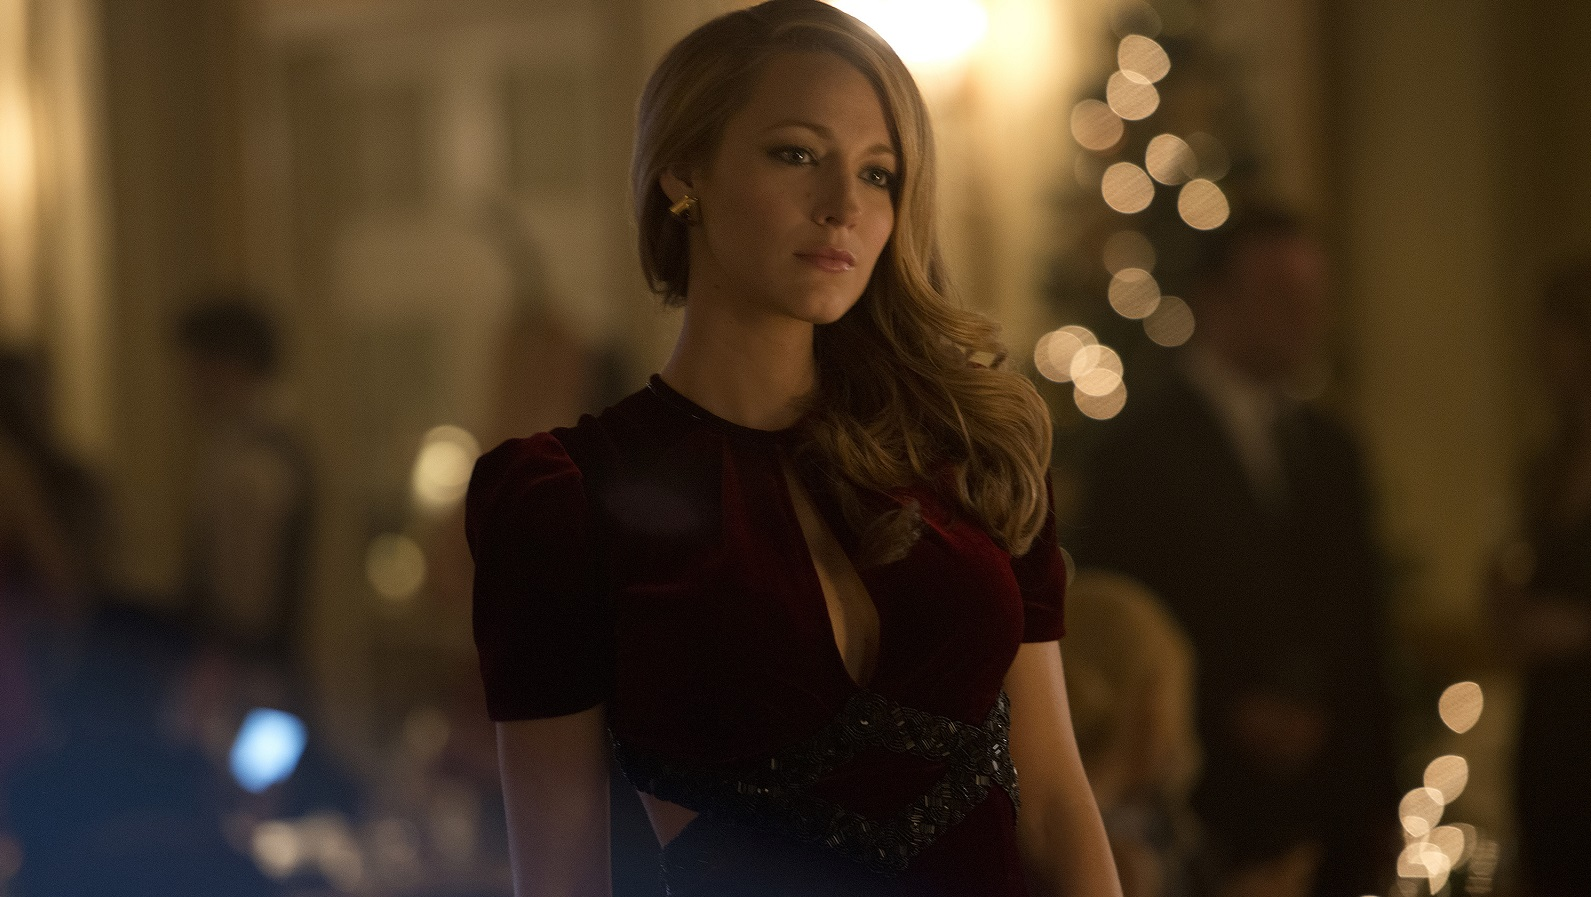 Blake Lively stars in 'The Age of Adaline.' (Diyah Pera/Lionsgate)